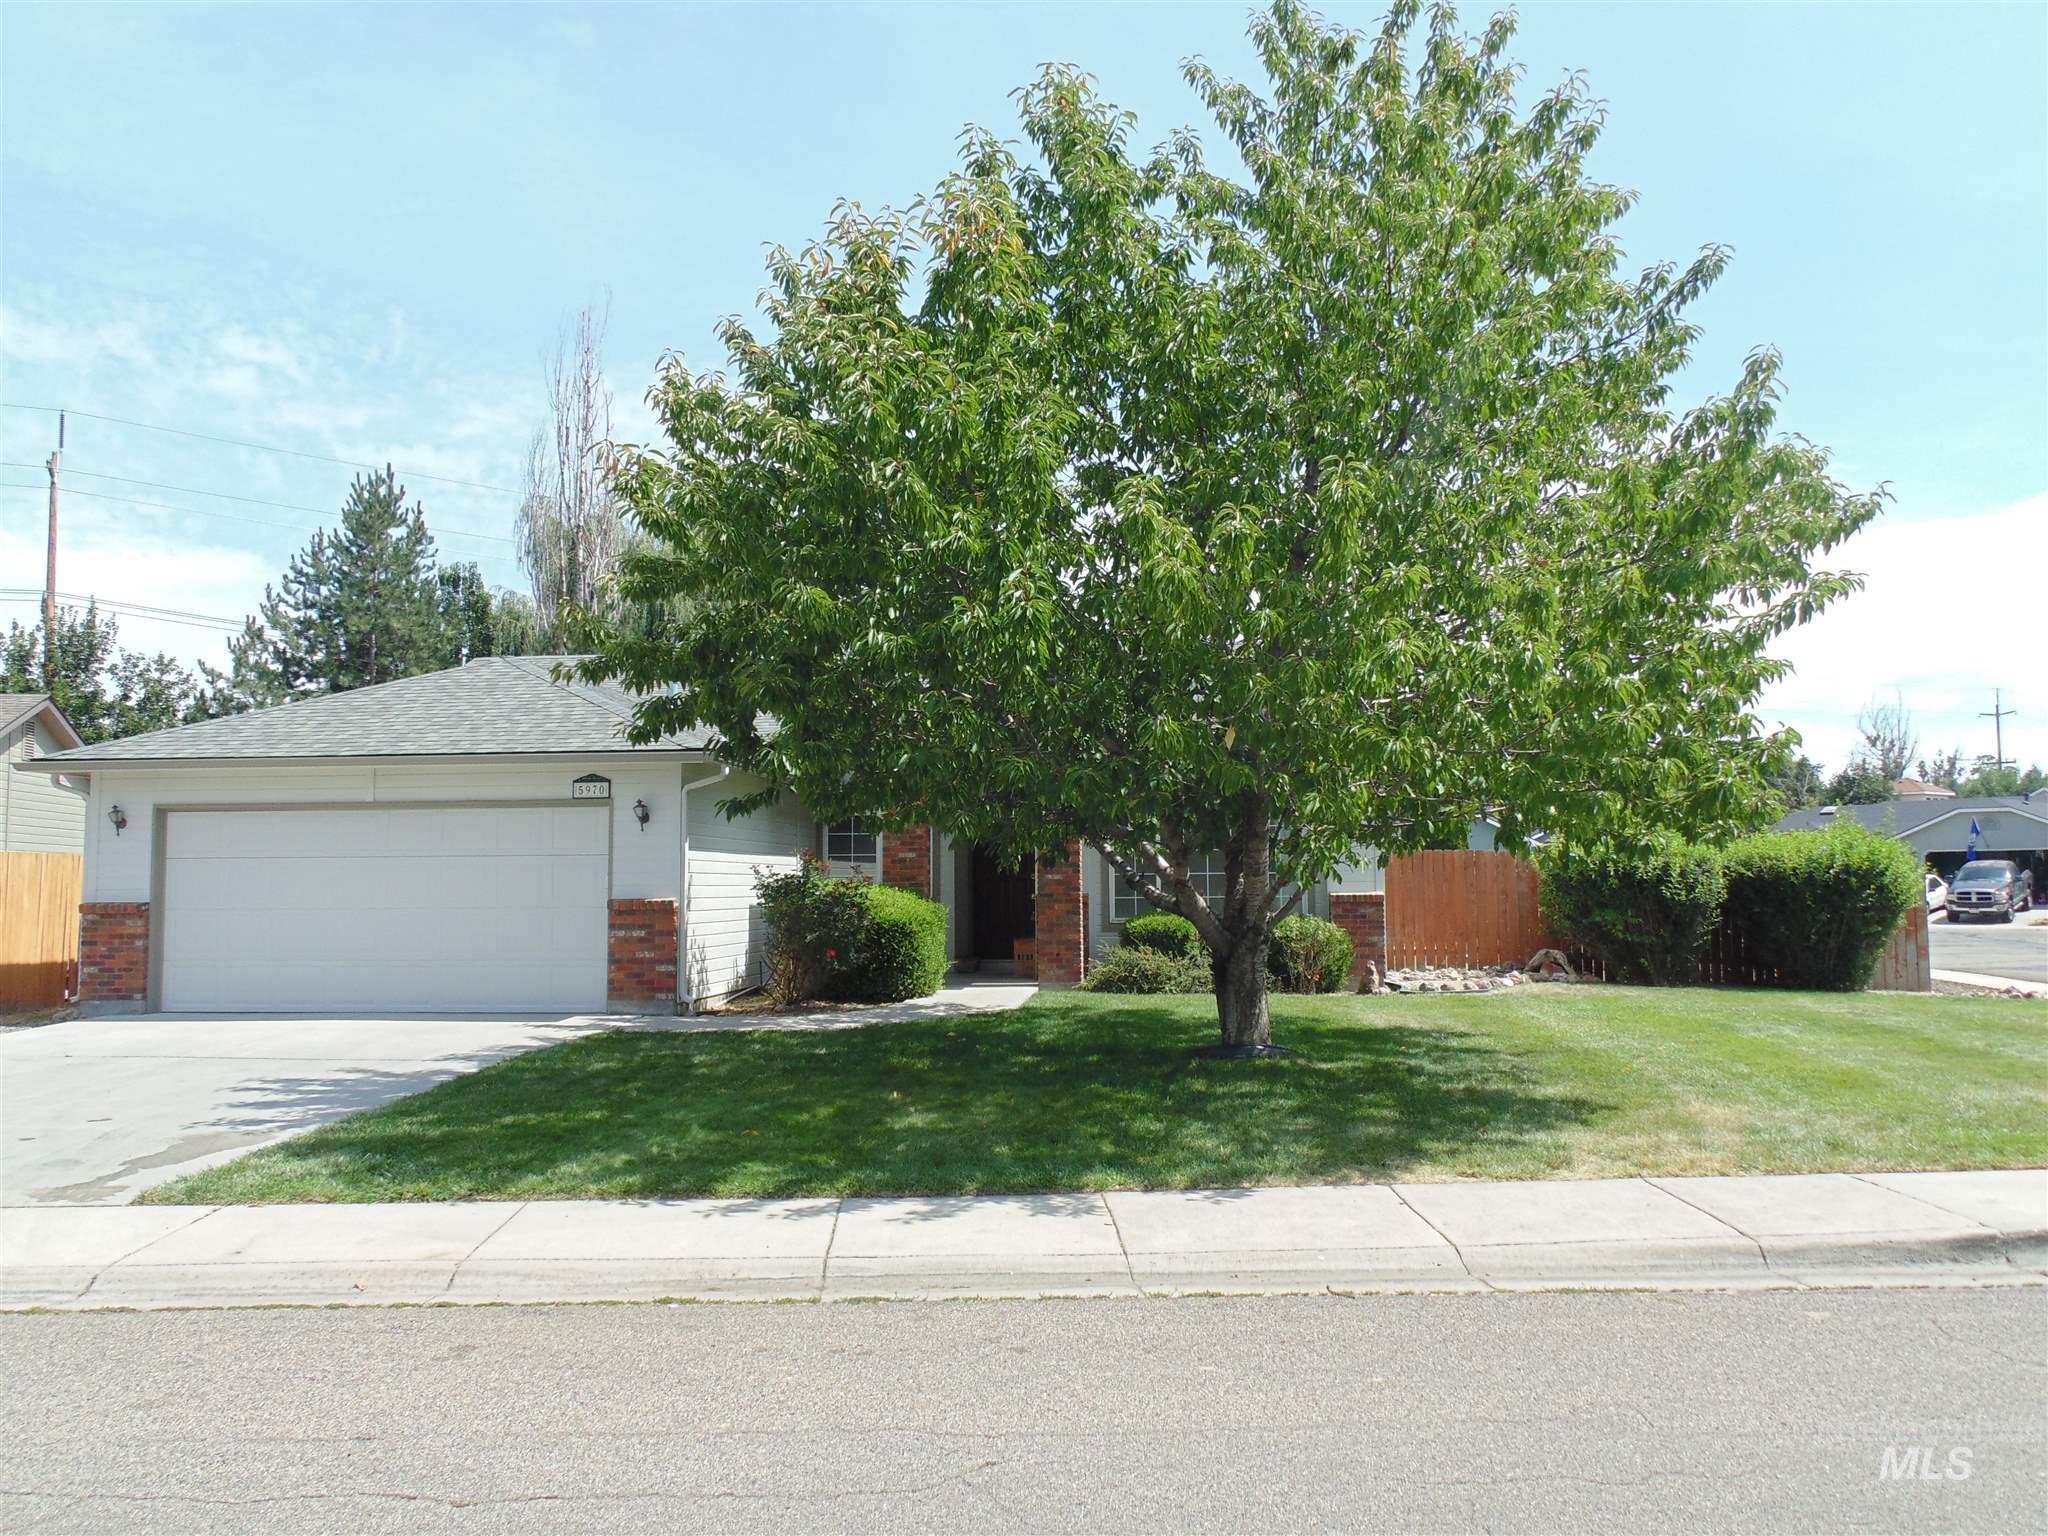 Photo for 5970 N Crewe Ave, Boise, ID 83714 (MLS # 98775861)